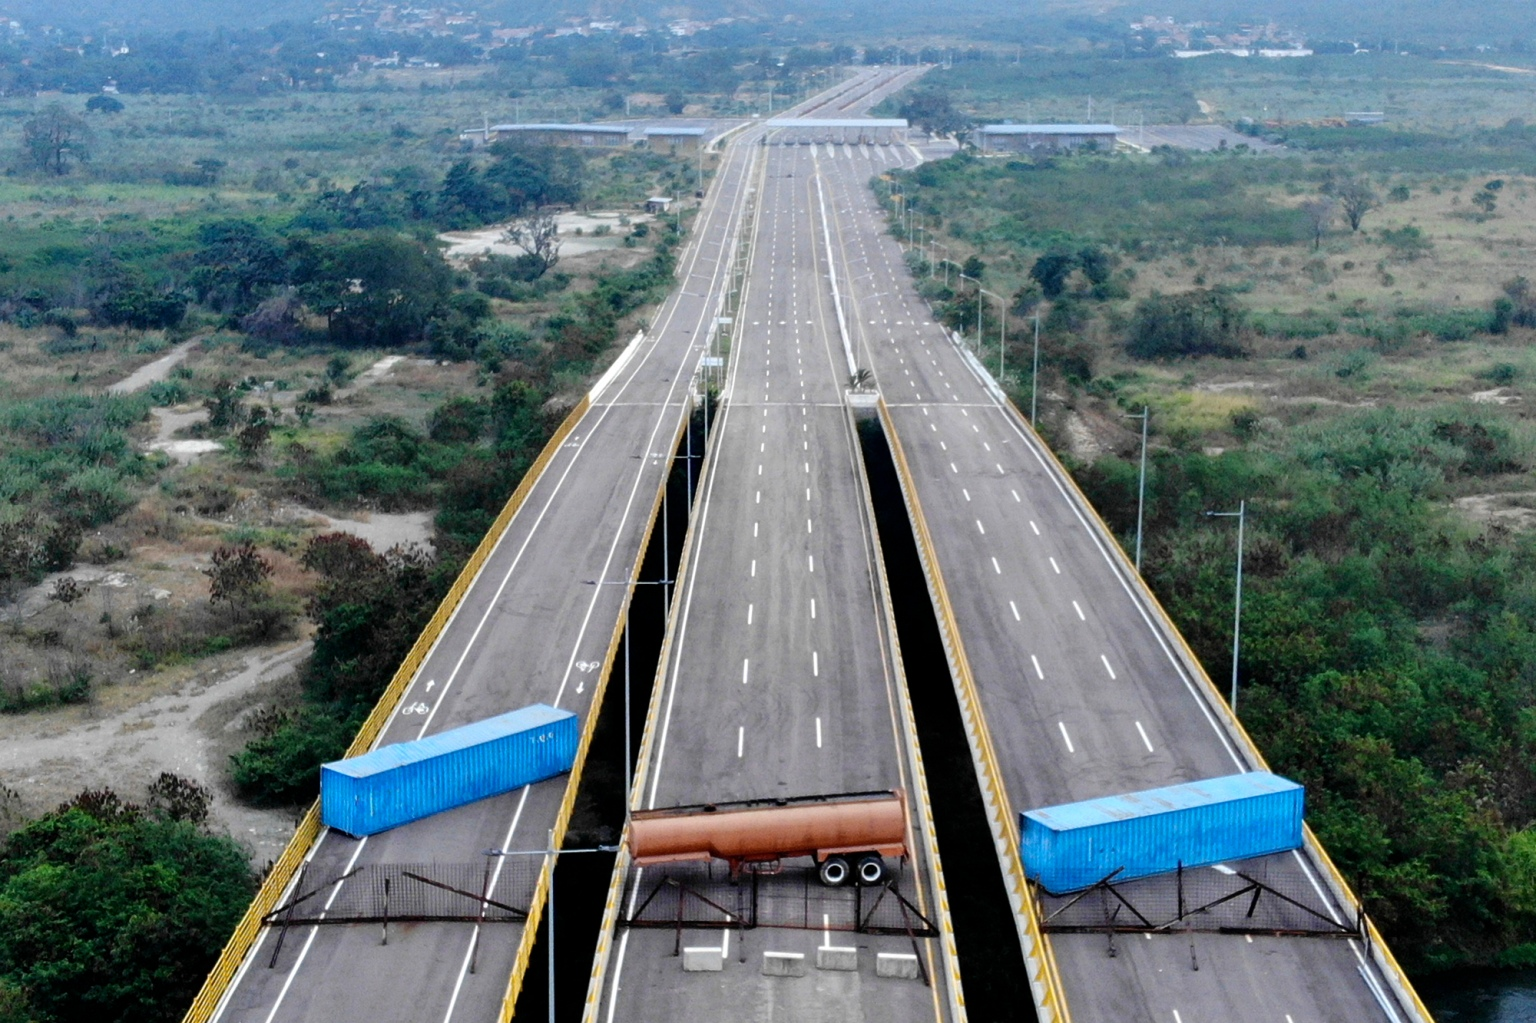 Venezuelan military forces blocked the Tienditas Bridge ahead of an anticipated humanitarian aid shipment at the border between Cucuta, Colombia, and Tachira, Venezuela, with containers on Feb. 6. (Edinson Estupinan/AFP/Getty Images)